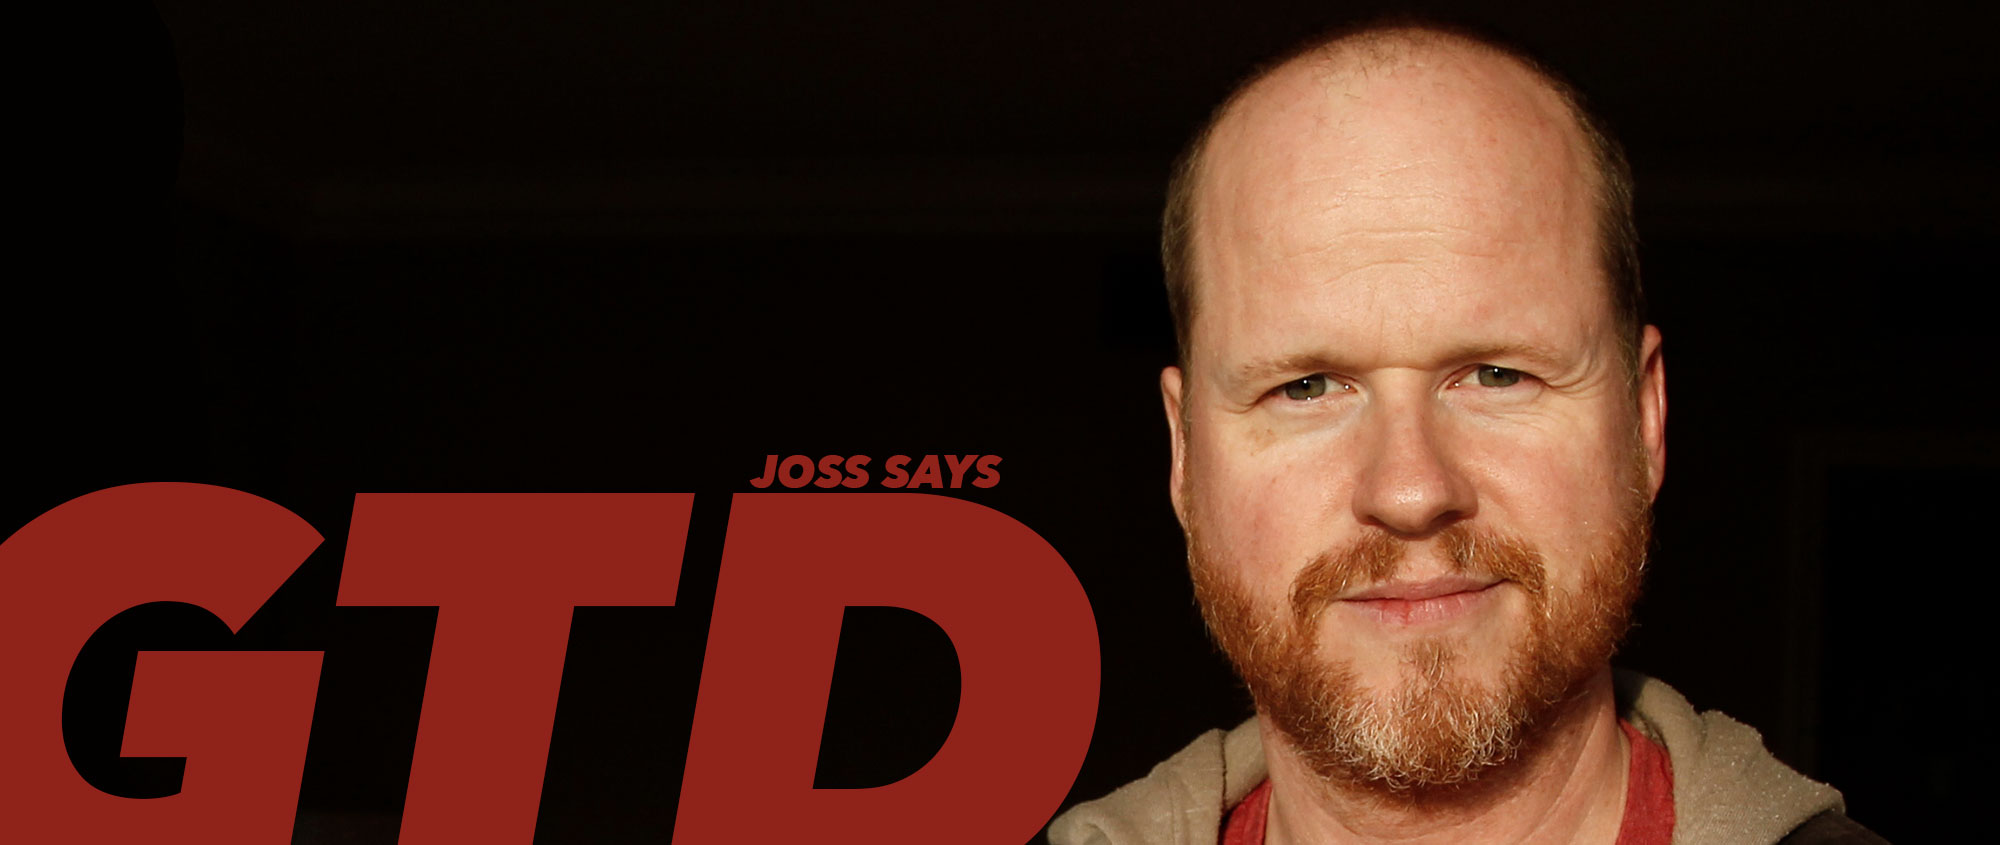 Joss says Get Things Done